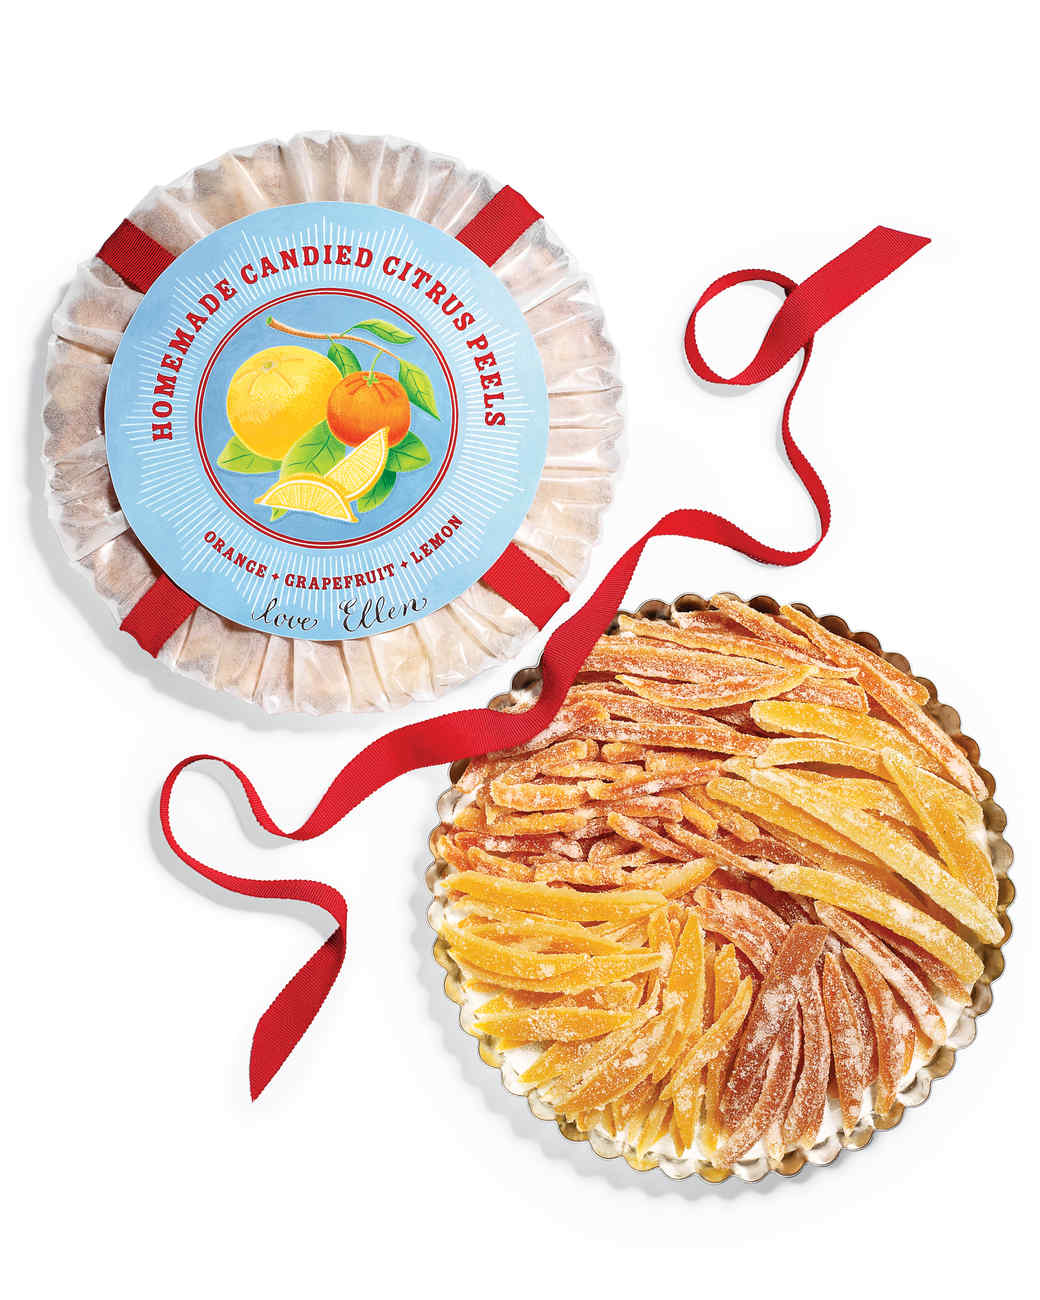 Packaging for Candied Citrus Peels